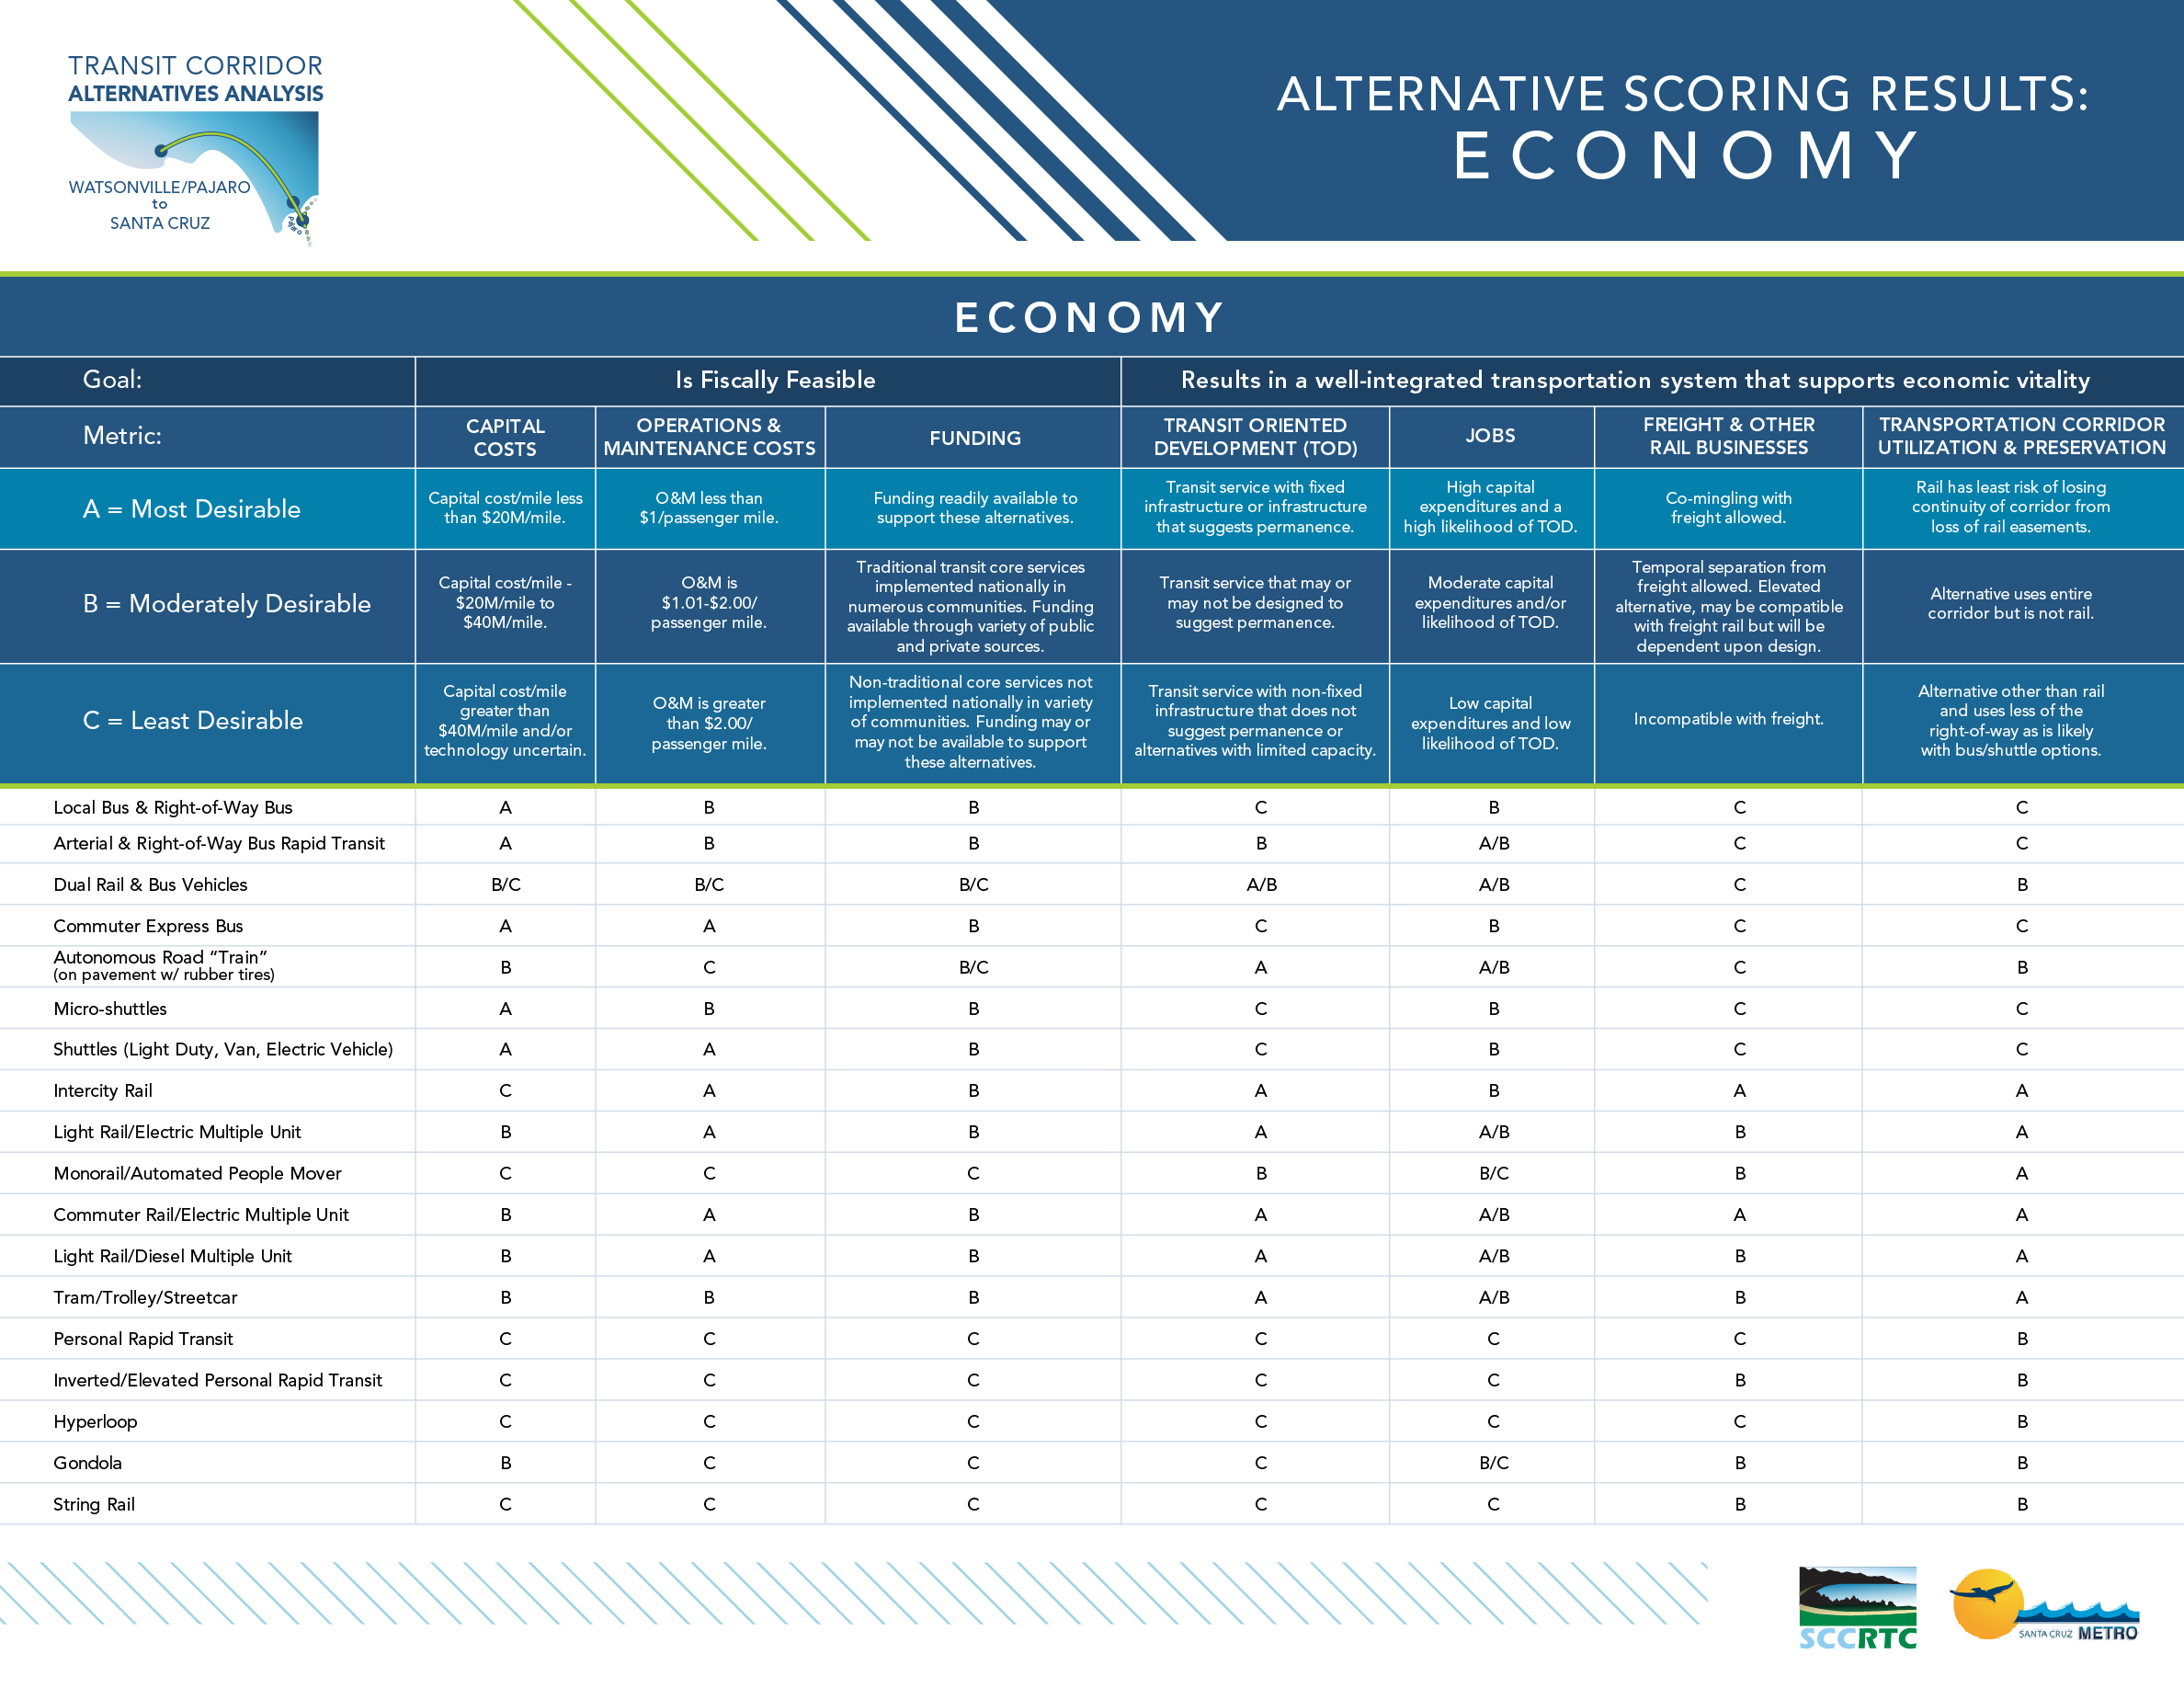 Board 4: Alternative Scoring Results: Economy Each alternative was scored against specific goals for Economy including fiscal feasibility and how well they integrated into the transportation system to support economic vitality. Within each goal are metrics that each have unique criteria to identify if they are A – Most Desirable, B – Moderately Desirable, or C – Less Desirable.